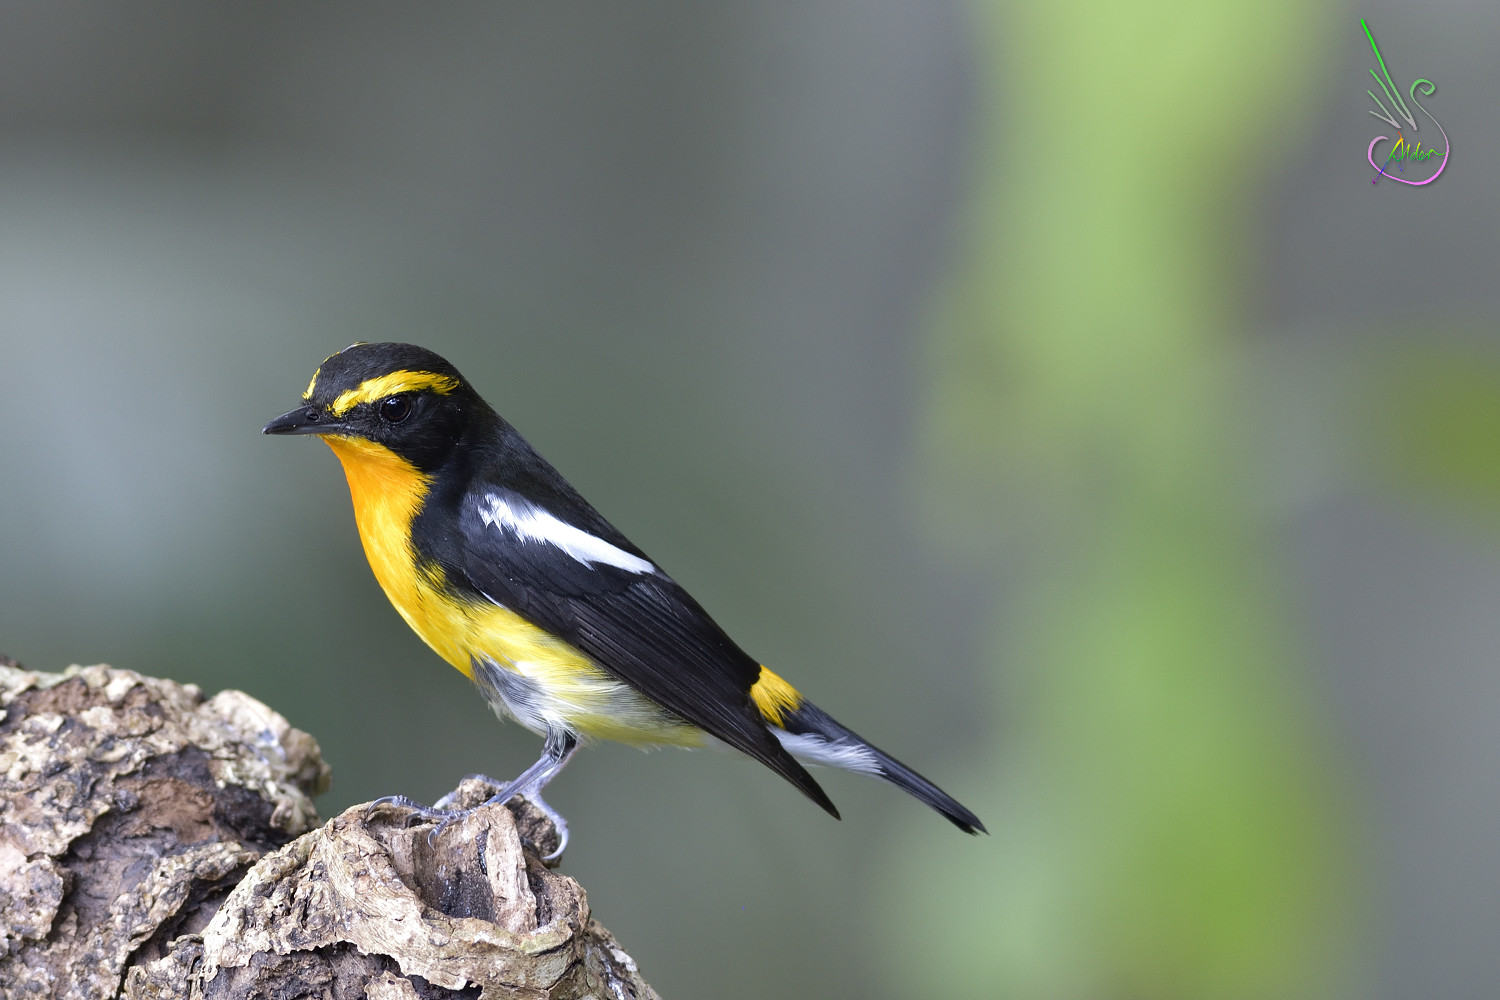 Narcissus_Flycatcher_8514